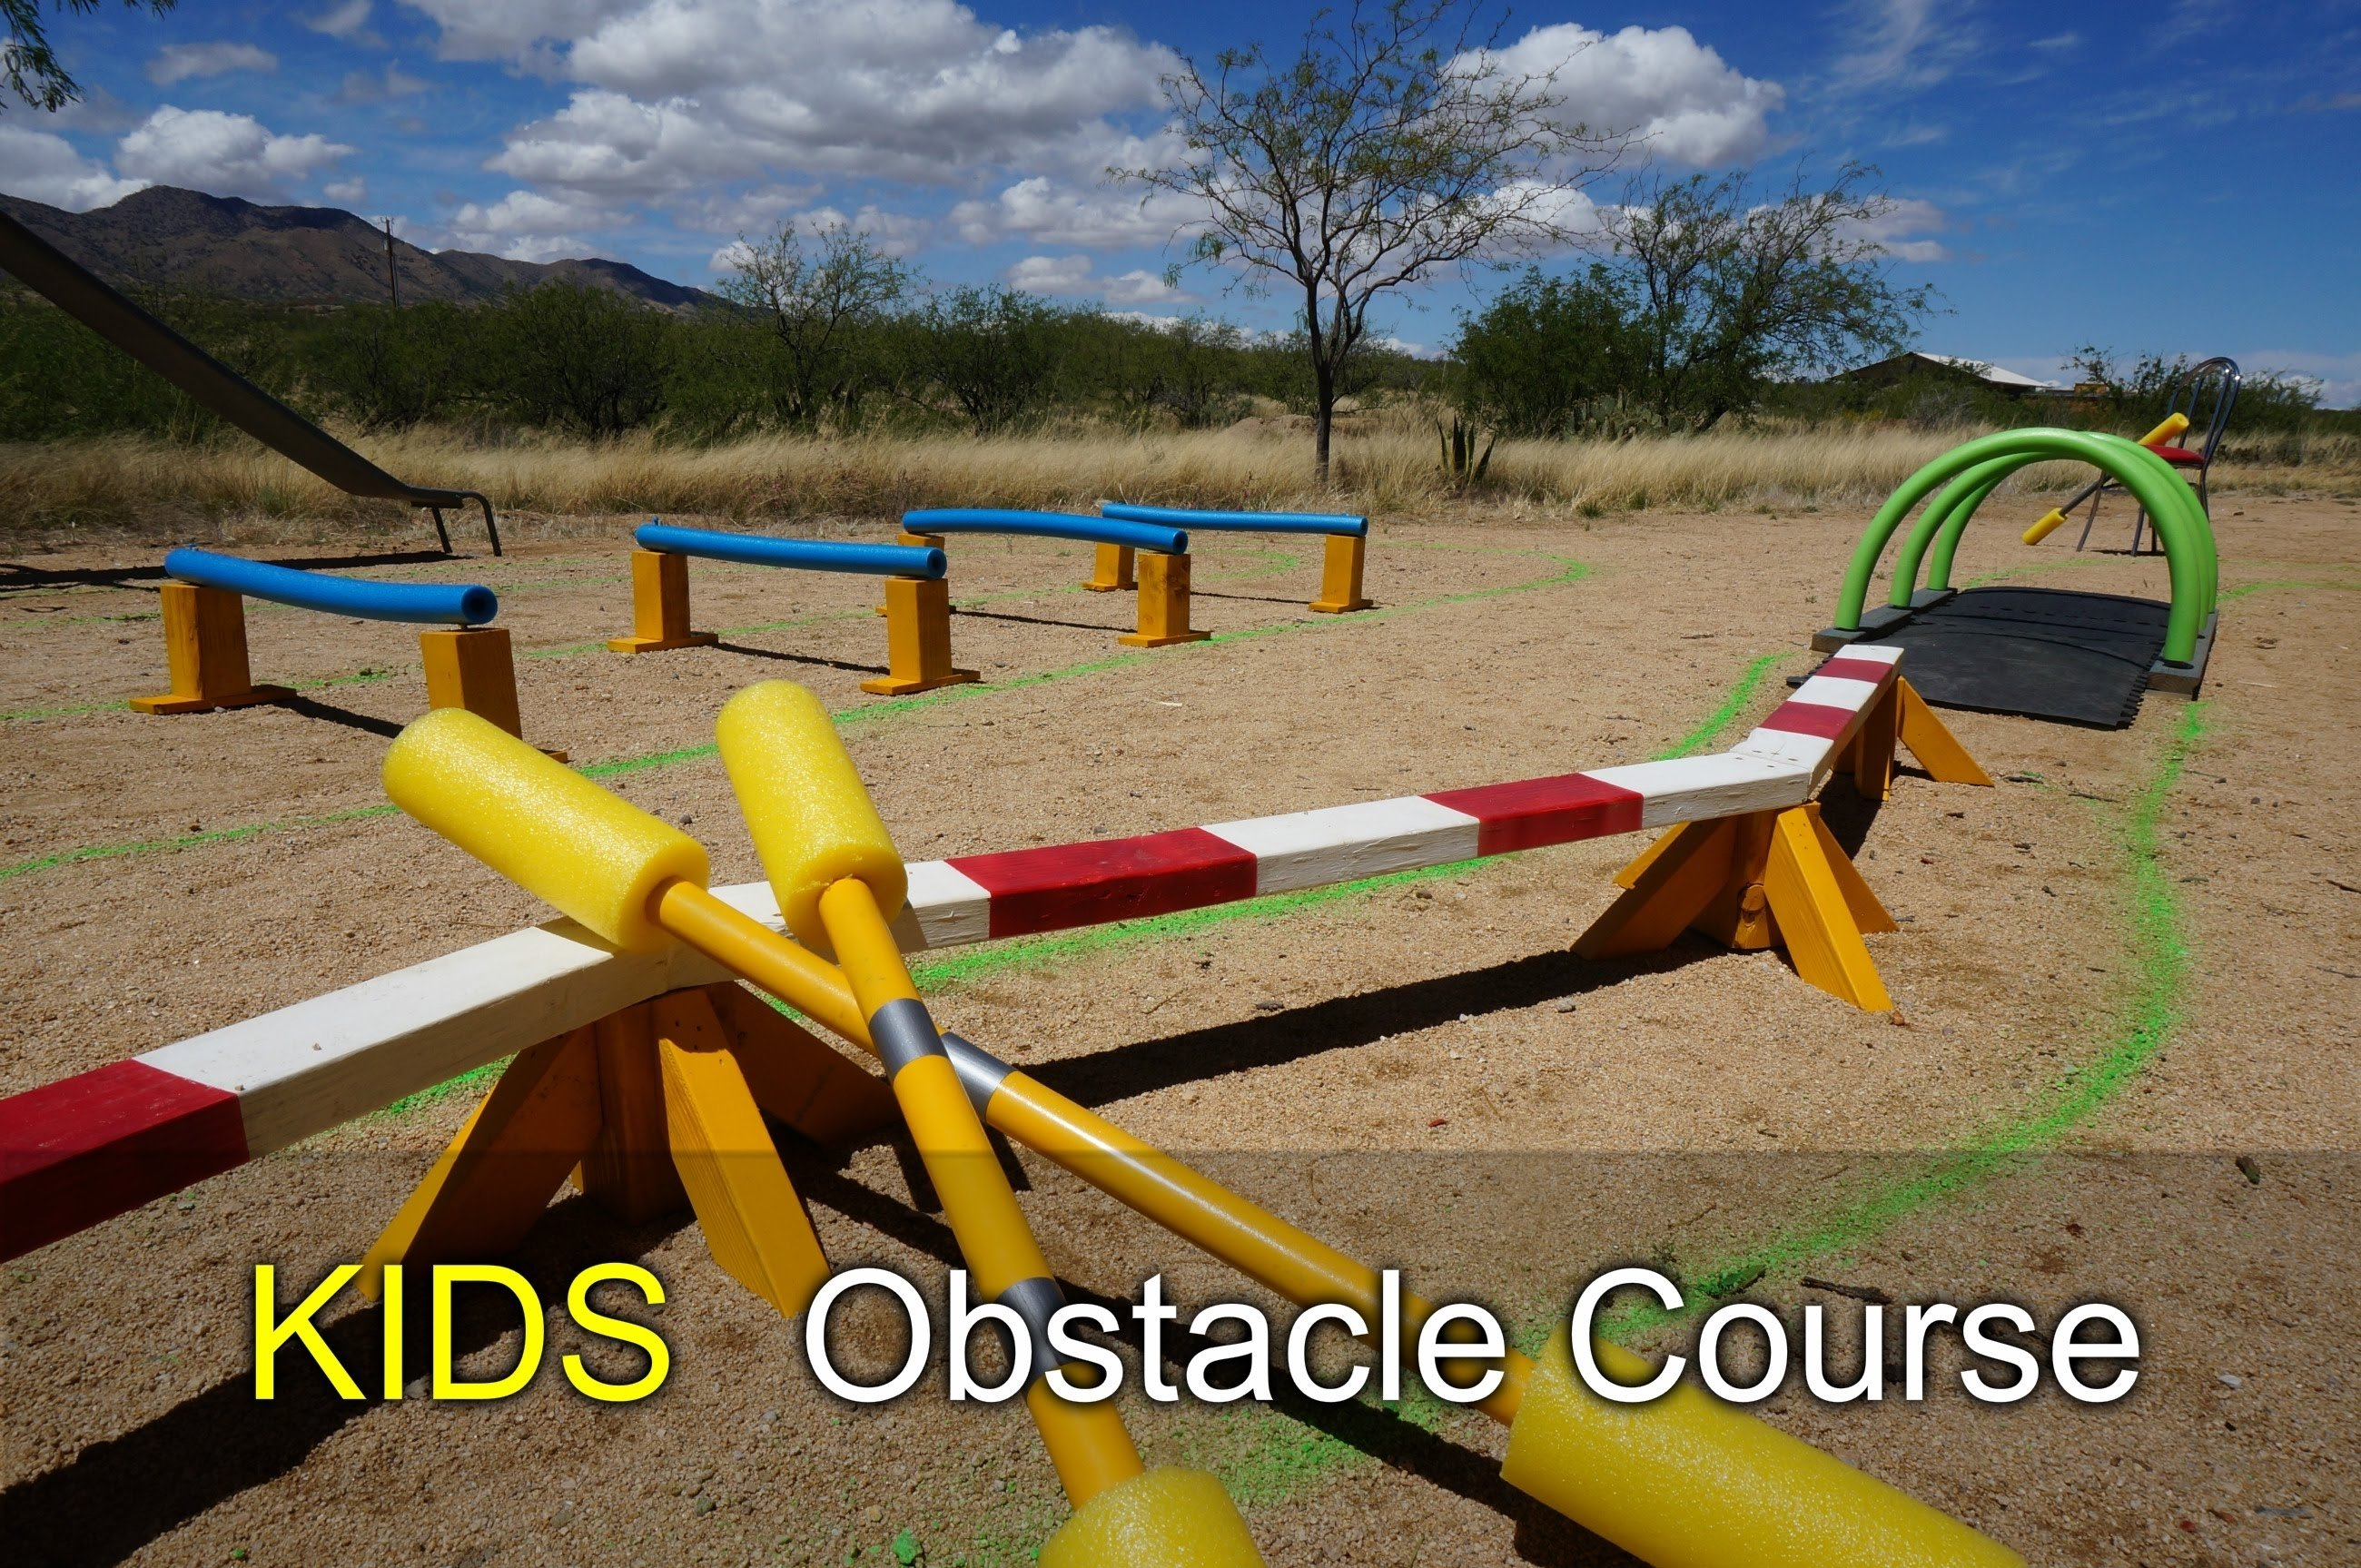 10 Fashionable Obstacle Course Ideas For Kids kids obstacle course how to with scrap wood and pool noodles youtube 1 2021